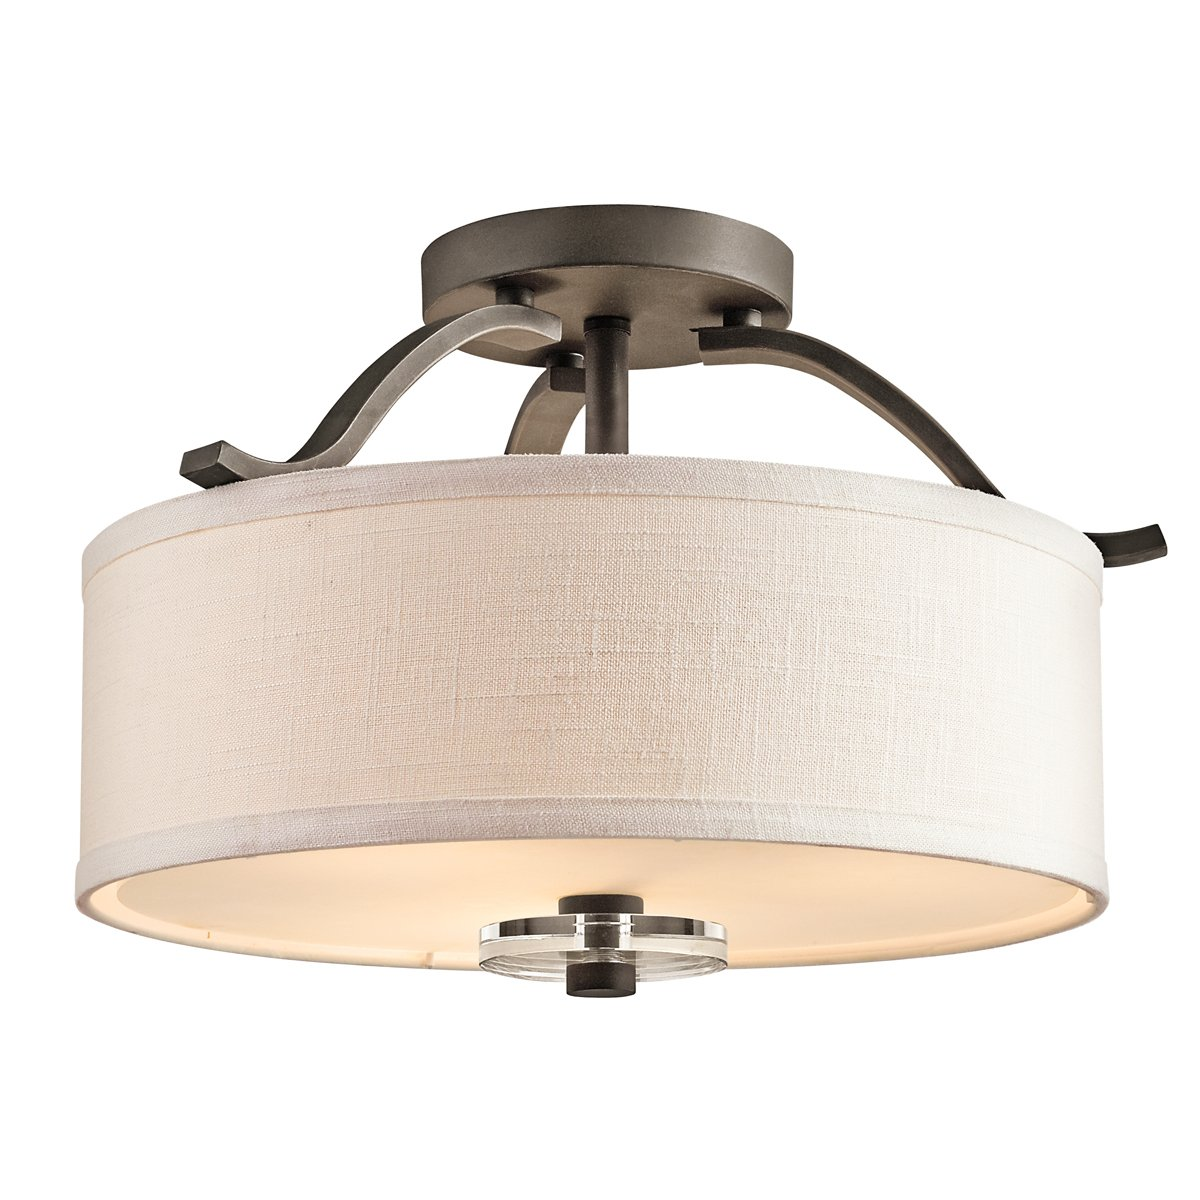 kichler lighting 42485oz leighton 3light semiflush ceiling light olde bronze and white fabric shades with satinetched glass semi flush mount ceiling - Semi Flush Mount Lighting